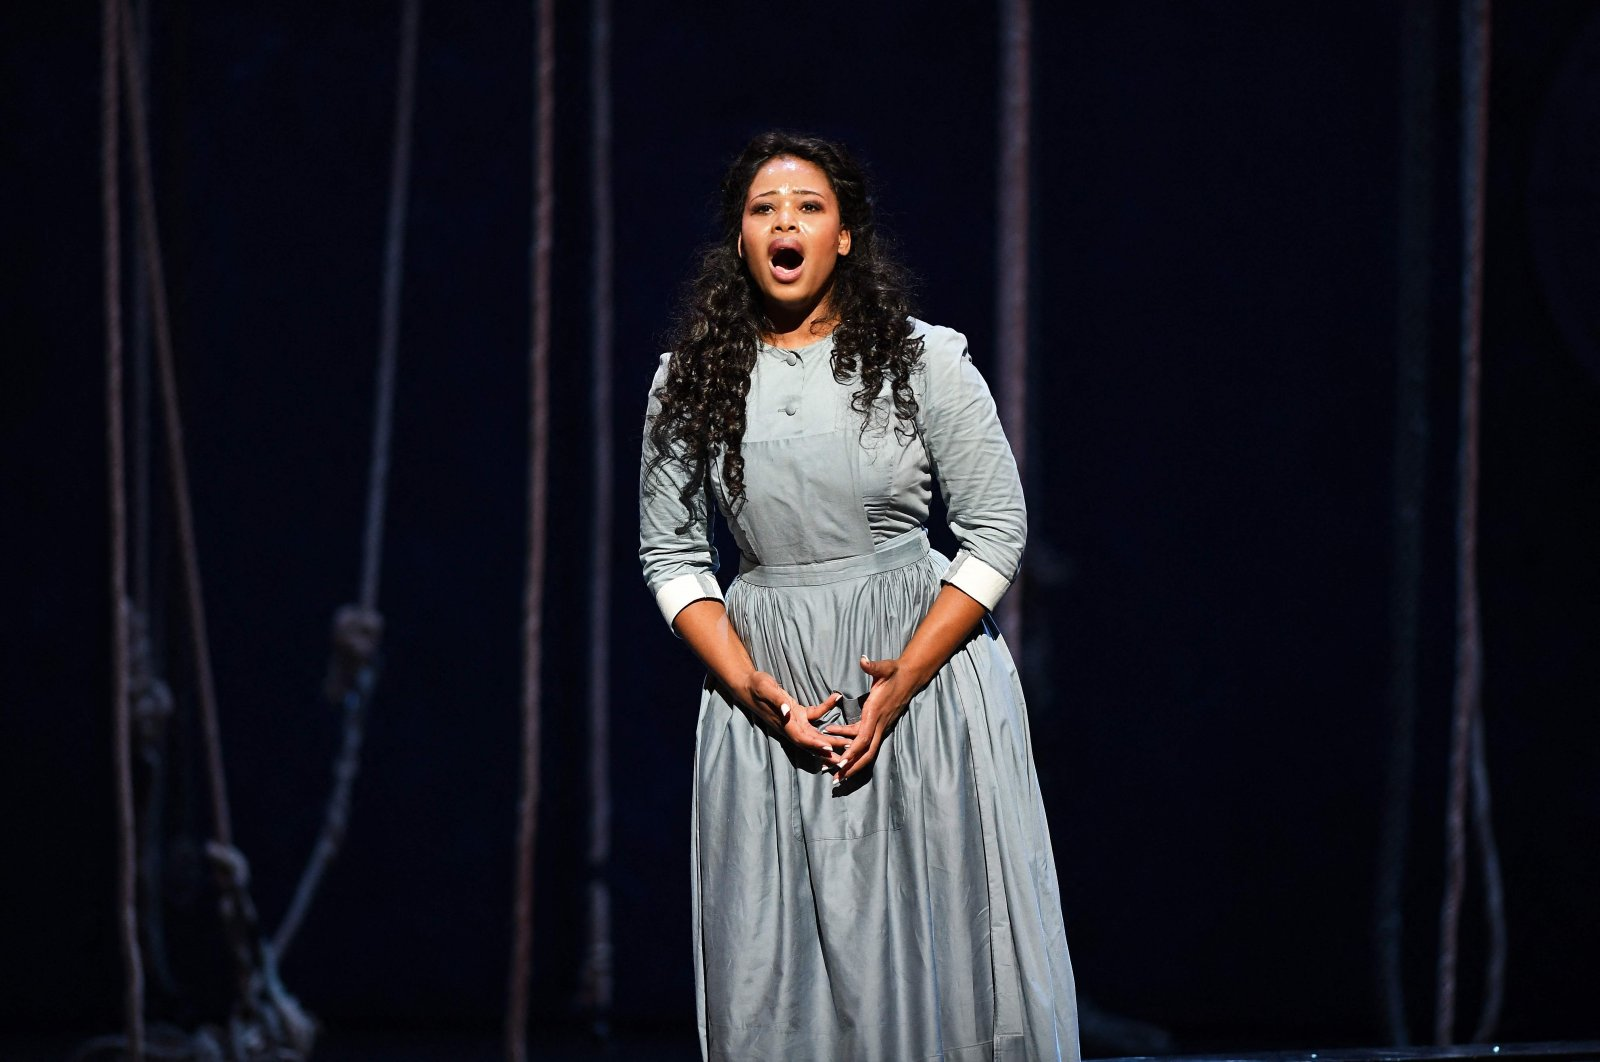 """South African soprano Pretty Yende performing in Italian composer Gaetano Donizetti's opera """"Lucia Di Lammermoor"""" at the Bastille Opera House in Paris, Oct.11, 2016. (AFP Photo)"""